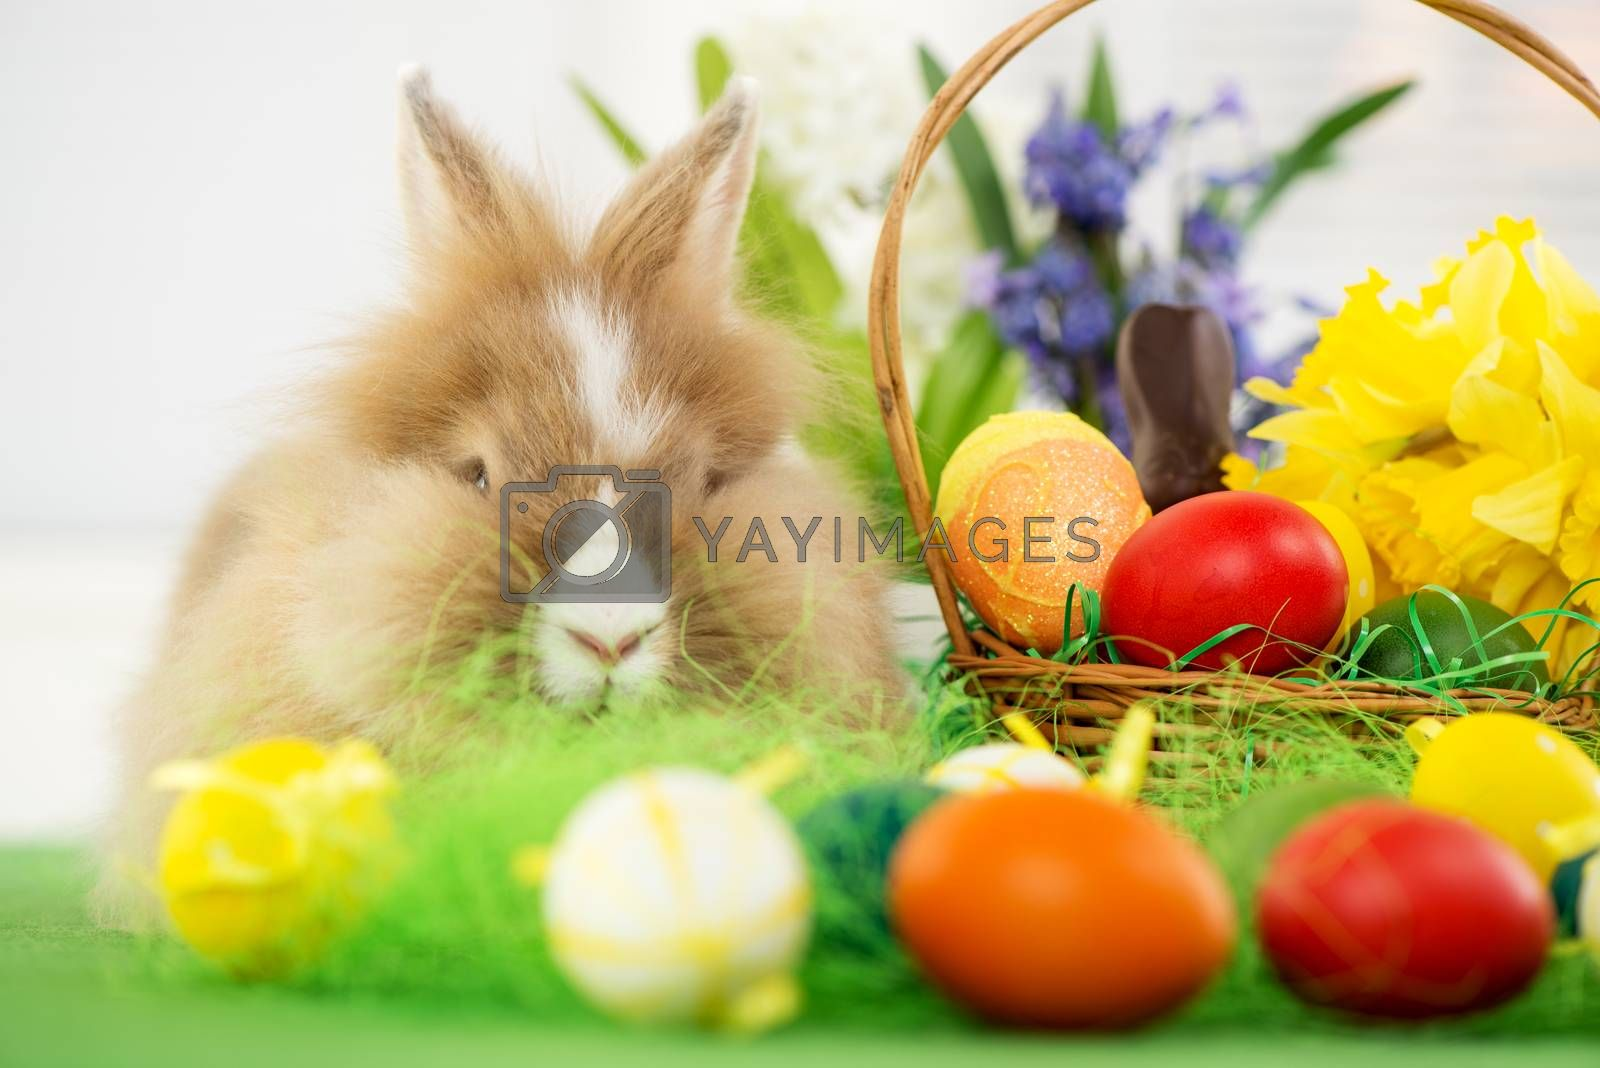 Easter Bunny with eggs in basket and flower. Selective focus. Focus on rabbit.